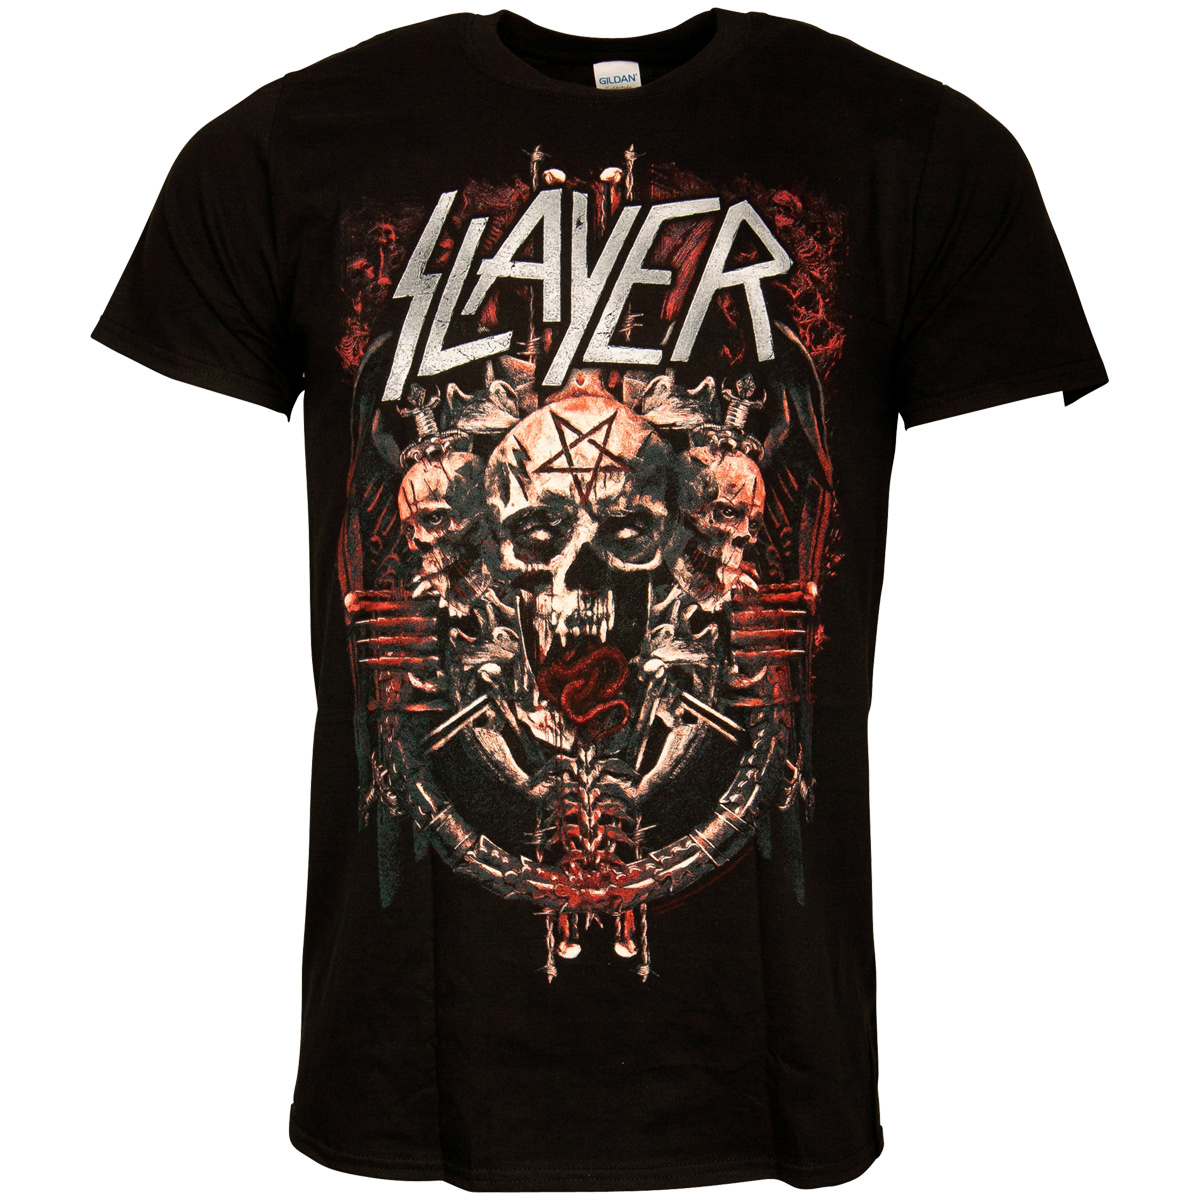 Slayer - T-Shirt Demonic Admat - schwarz